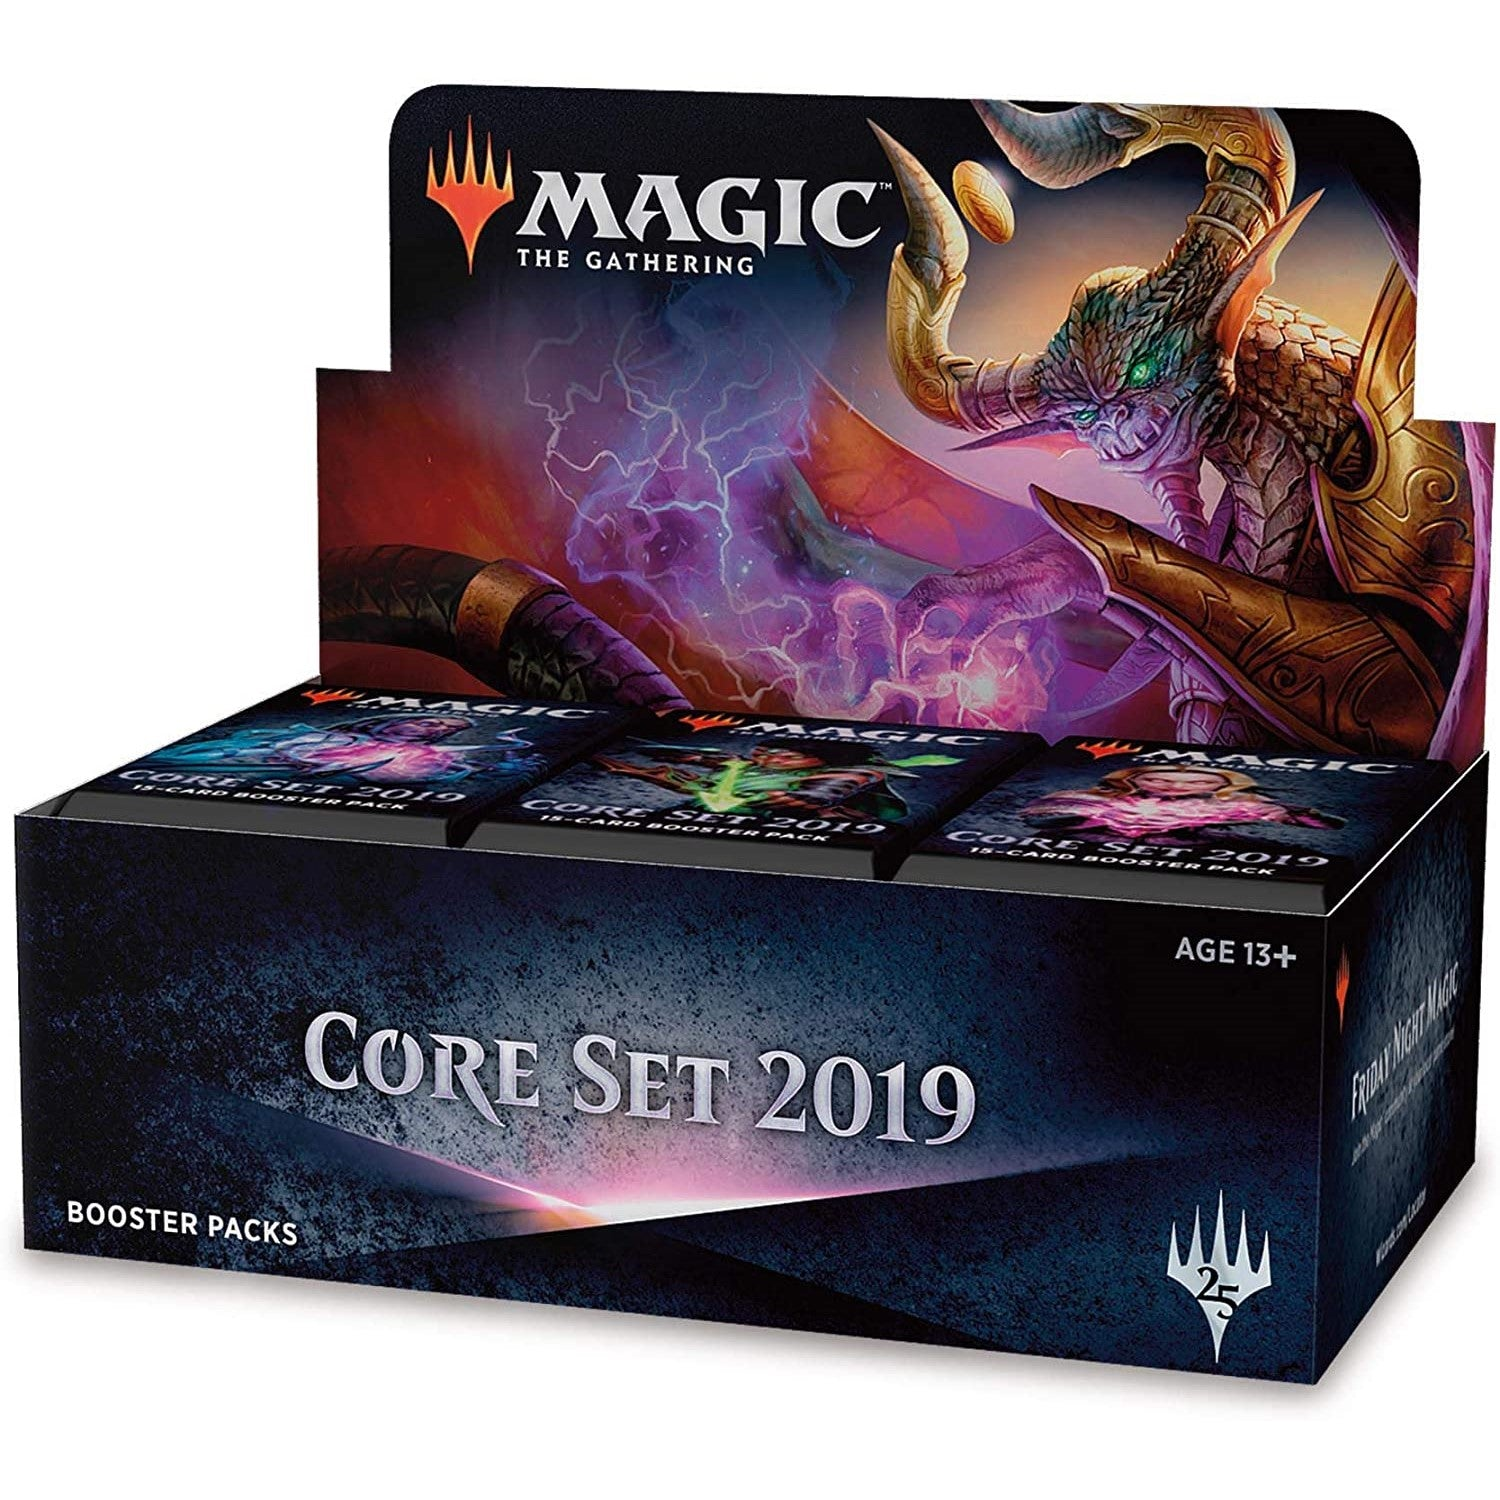 Core Set 2019 Sealed Product